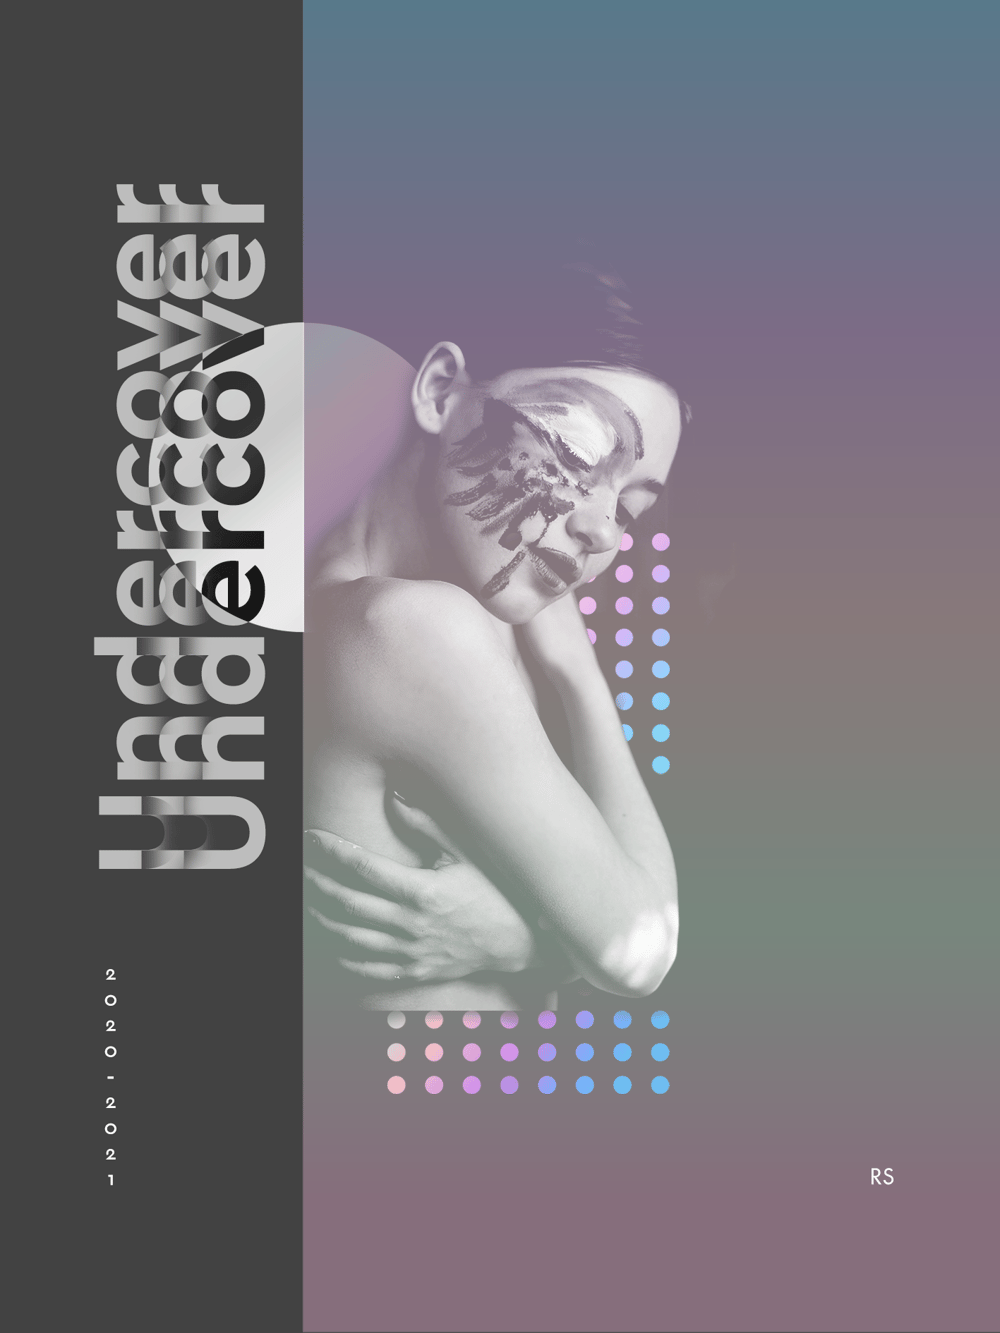 Promotional Abstract Gradient - image 1 - student project